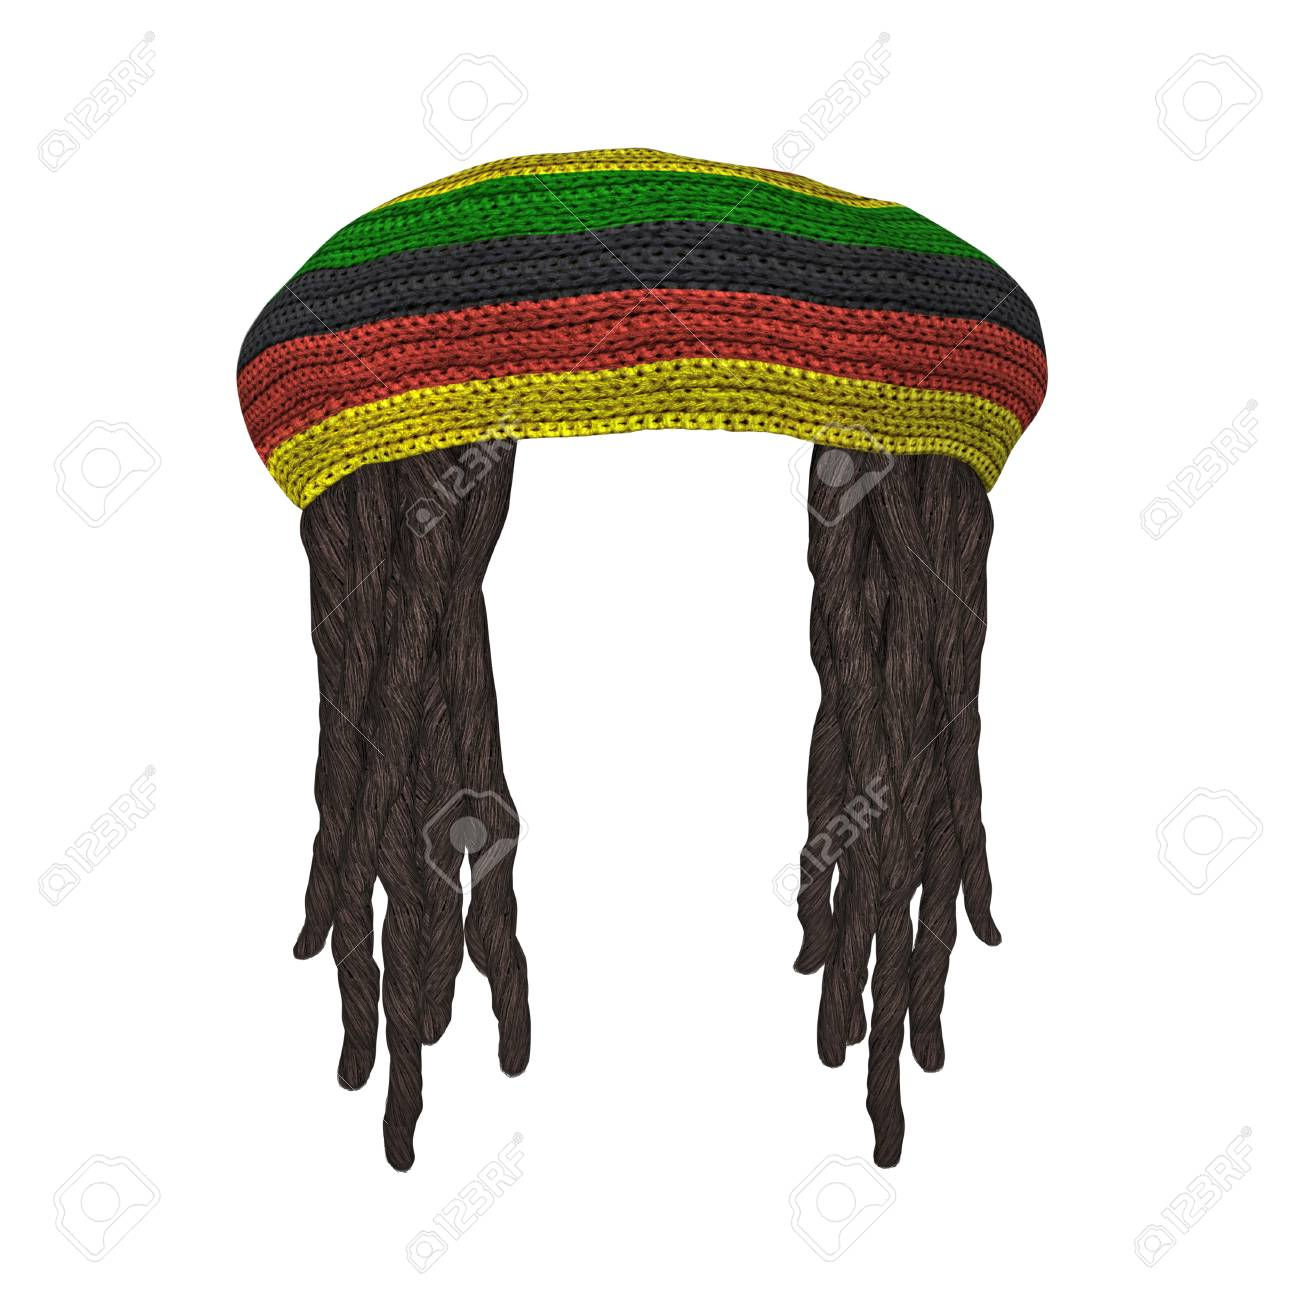 4d07f343413 Rastafarians hat with dreadlocks isolated on white. 3D rendering Stock  Photo - 91624771